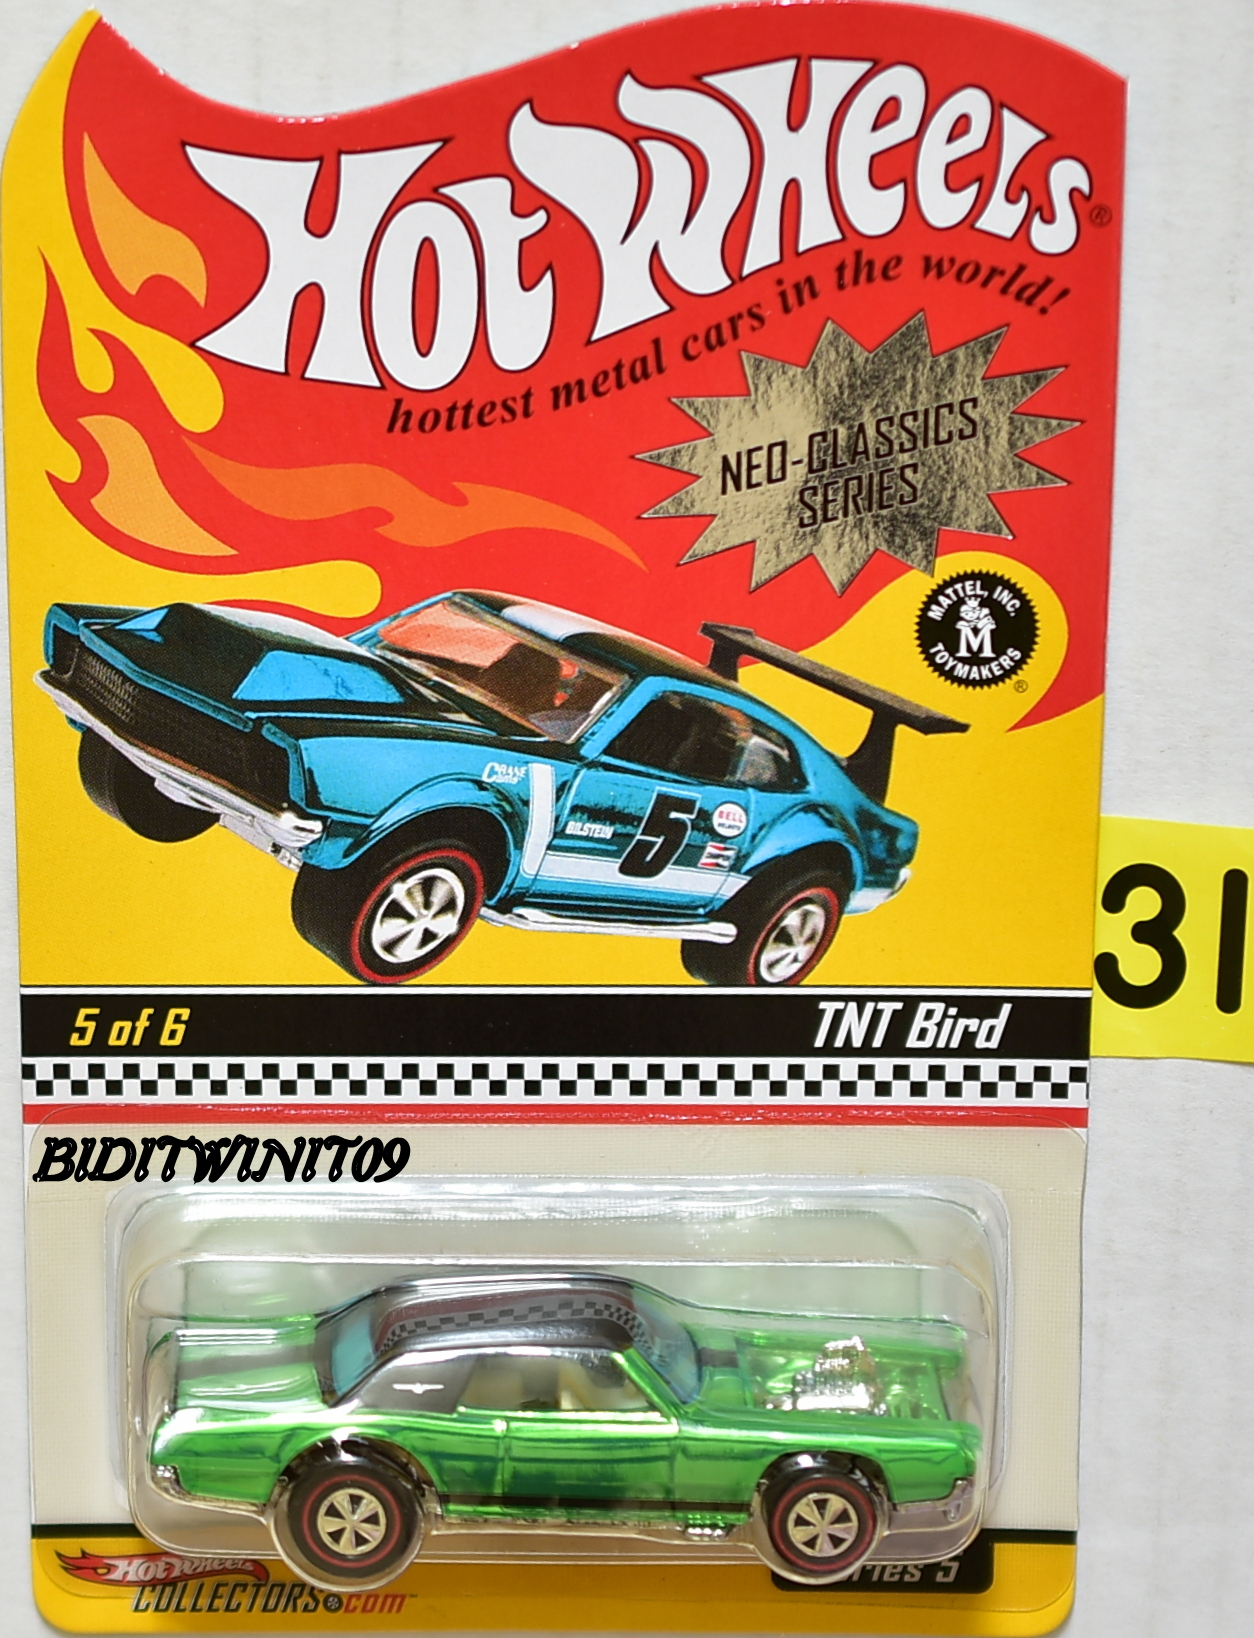 HOT WHEELS 2006 NEO-CLASSICS SERIES #5/6 SERIES 5 TNT BIRD